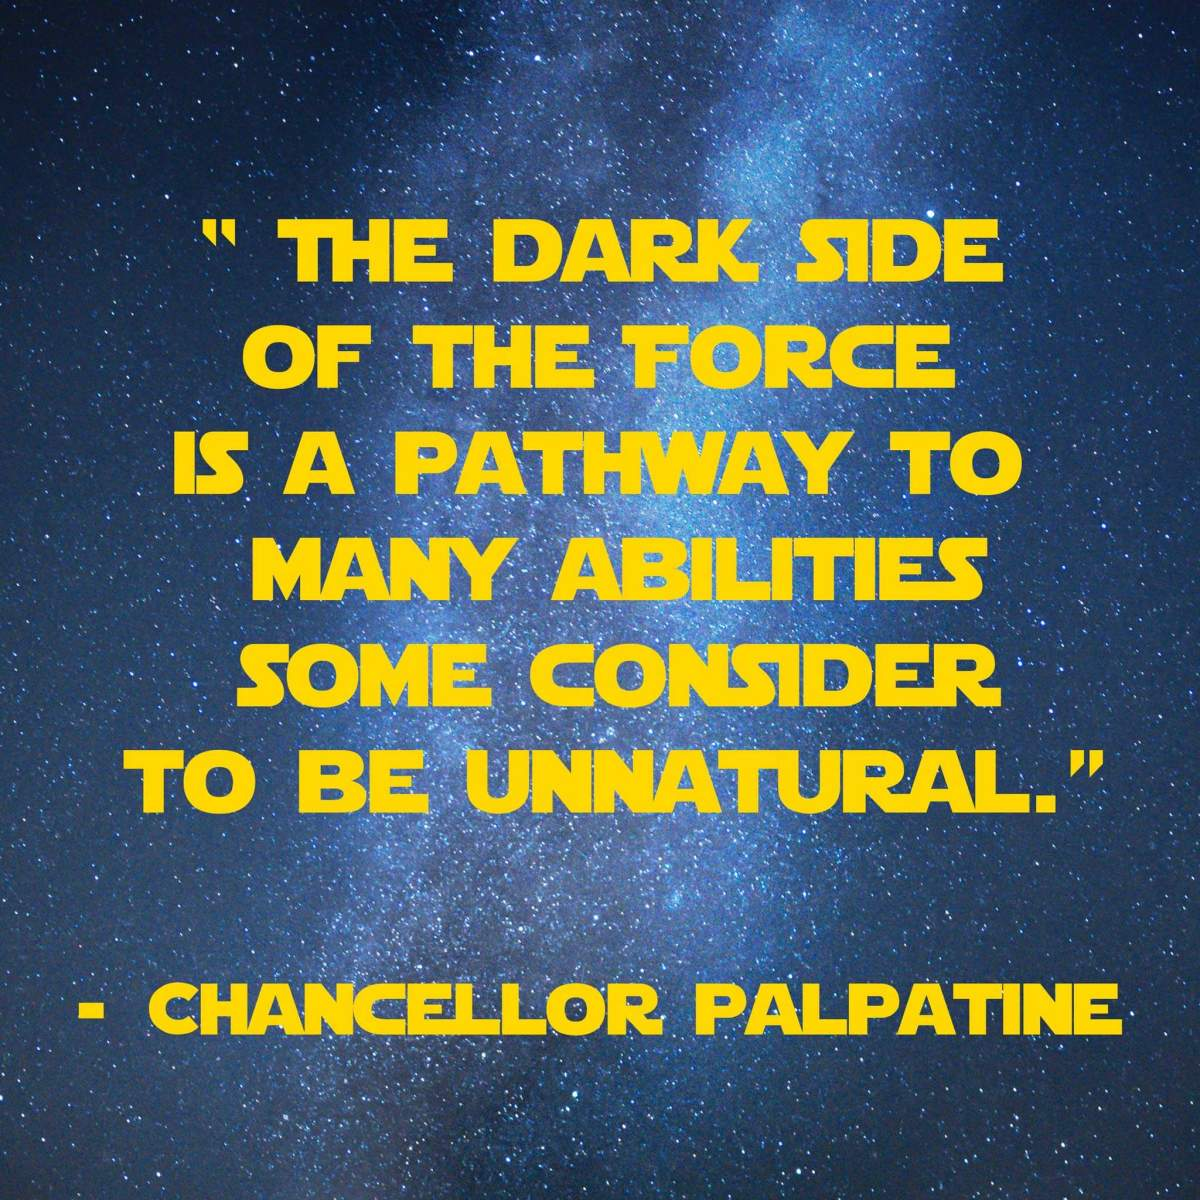 The Dark Side of the Force is a pathway to many abilities some consider to be unnatural | 31 Memorable Star Wars Quotes for Geeks